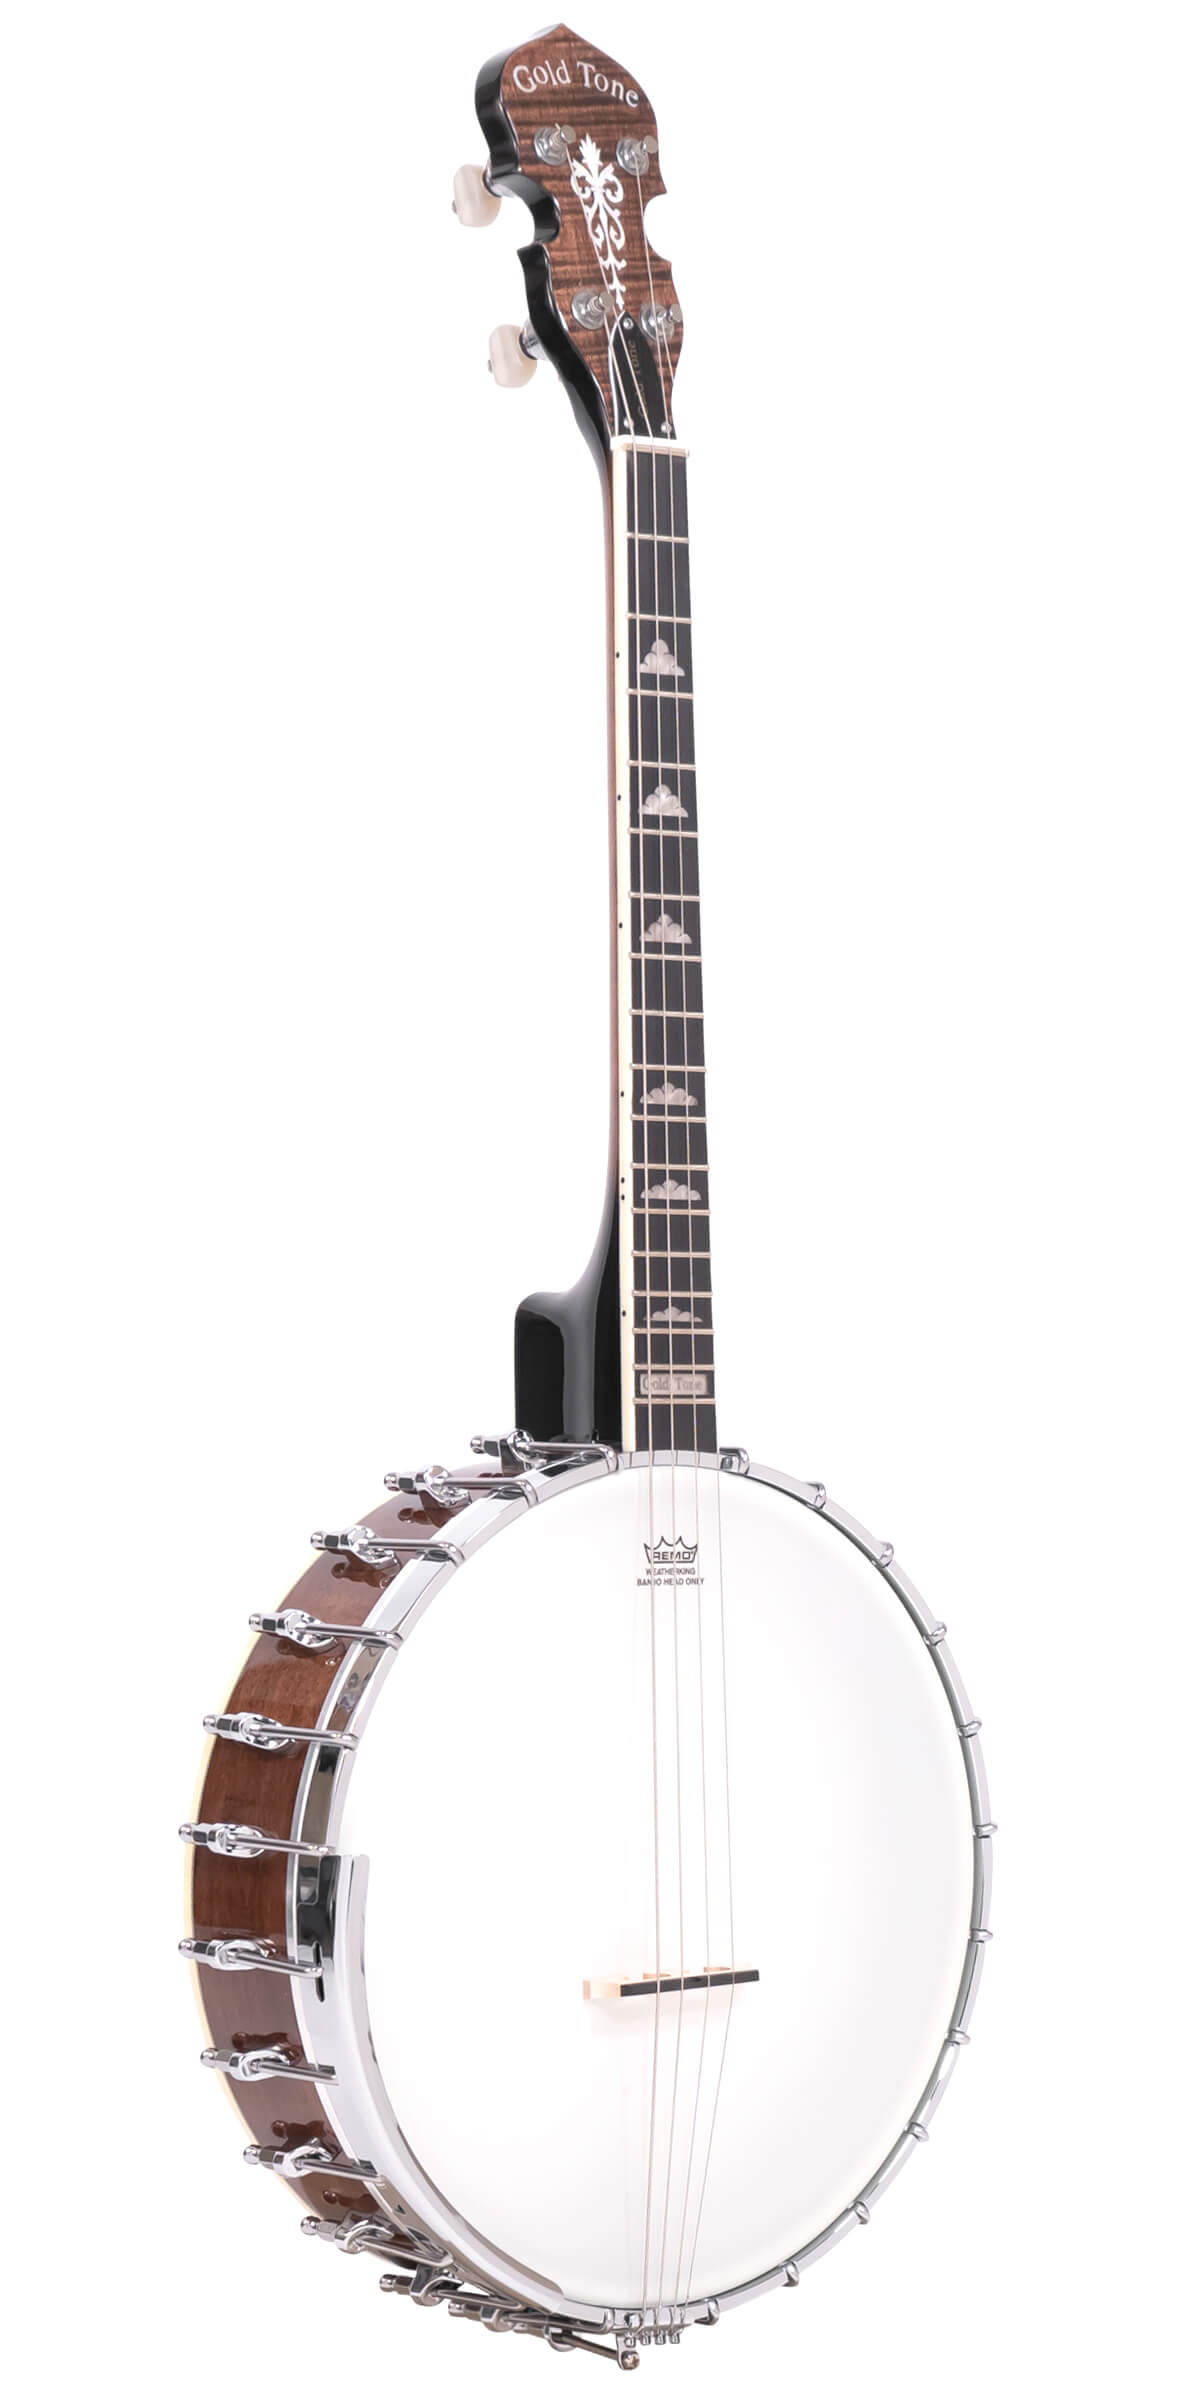 IT-250: Irish Tenor Banjo